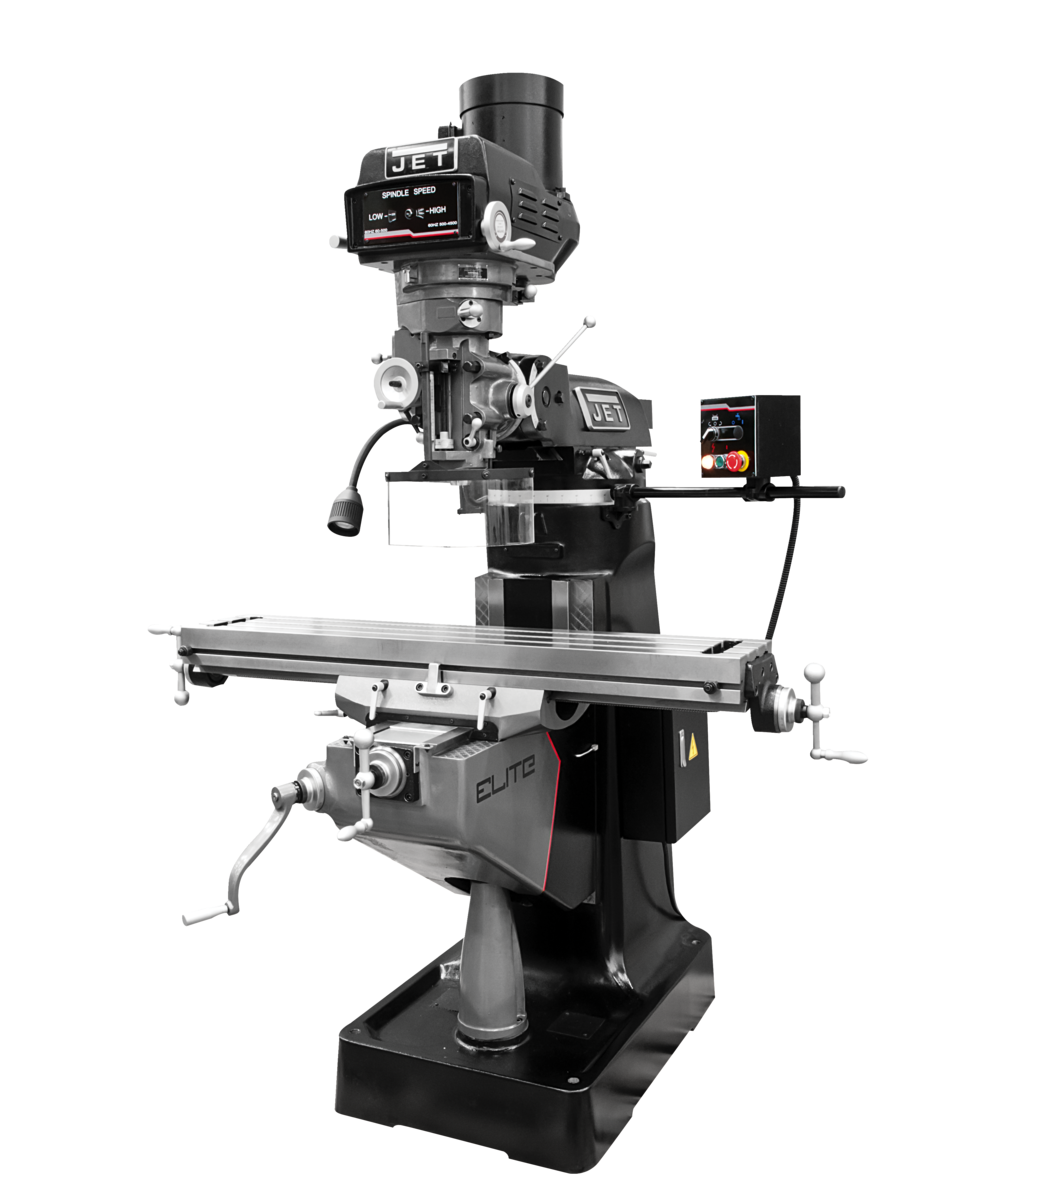 ETM-949 Mill with 3-Axis ACU-RITE 203 (Quill) DRO and Servo X-Axis Powerfeed